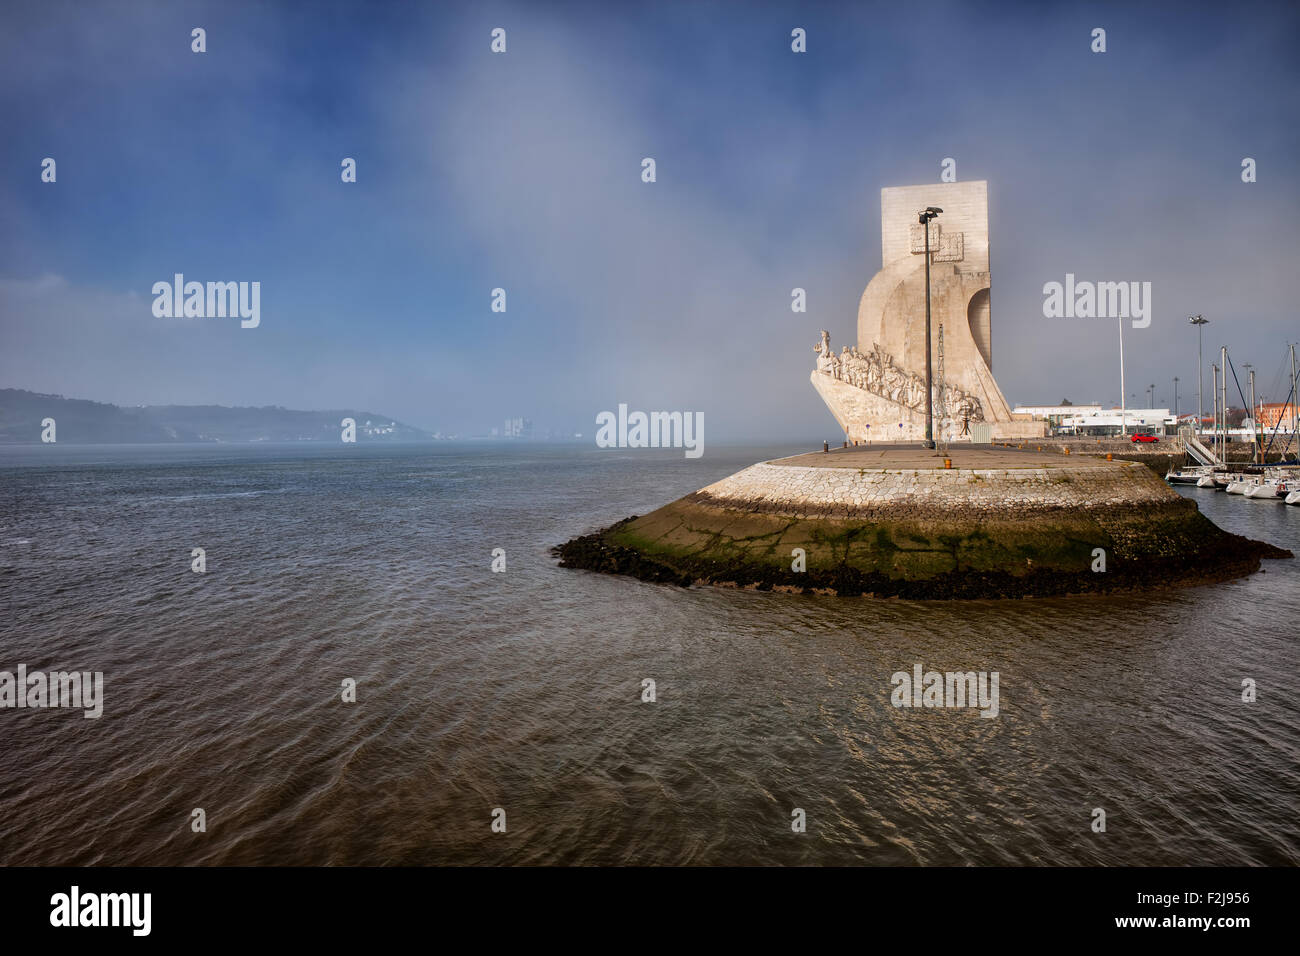 Mist at the Monument to the Discoveries and Tagus river in Belem, Lisbon, Portugal. - Stock Image